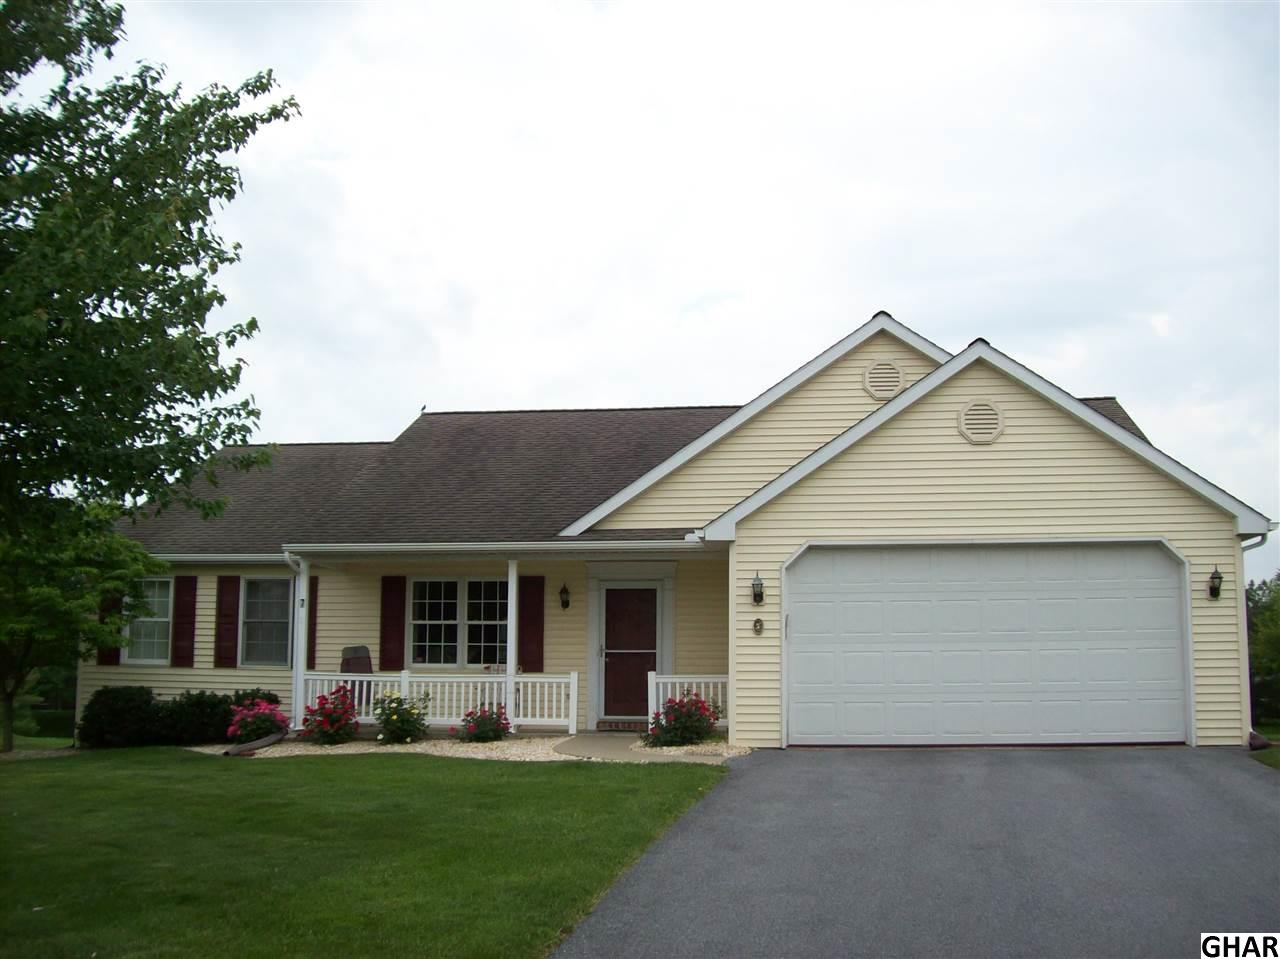 7 Springhouse Dr, Myerstown, PA 17067